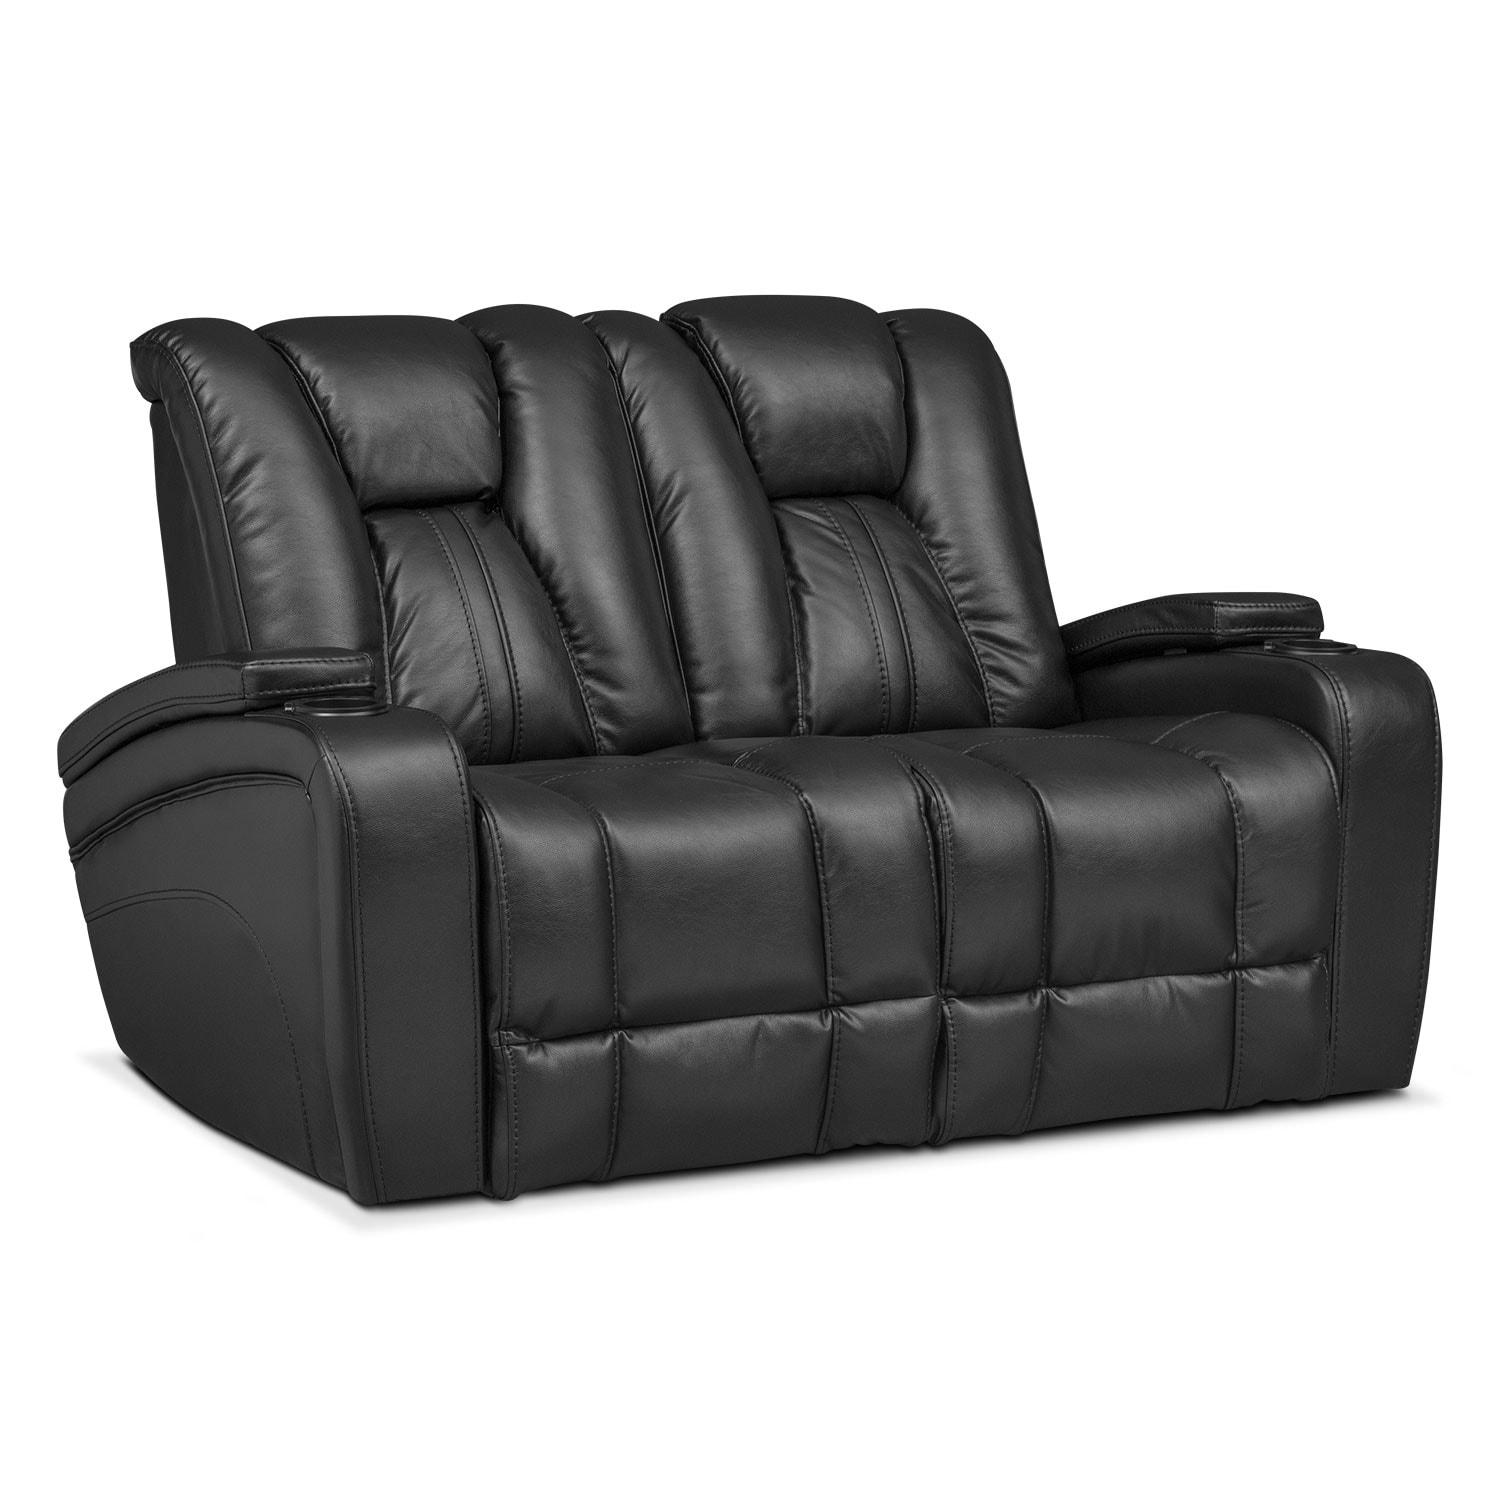 Pulsar Dual Power Reclining Loveseat Black Value City